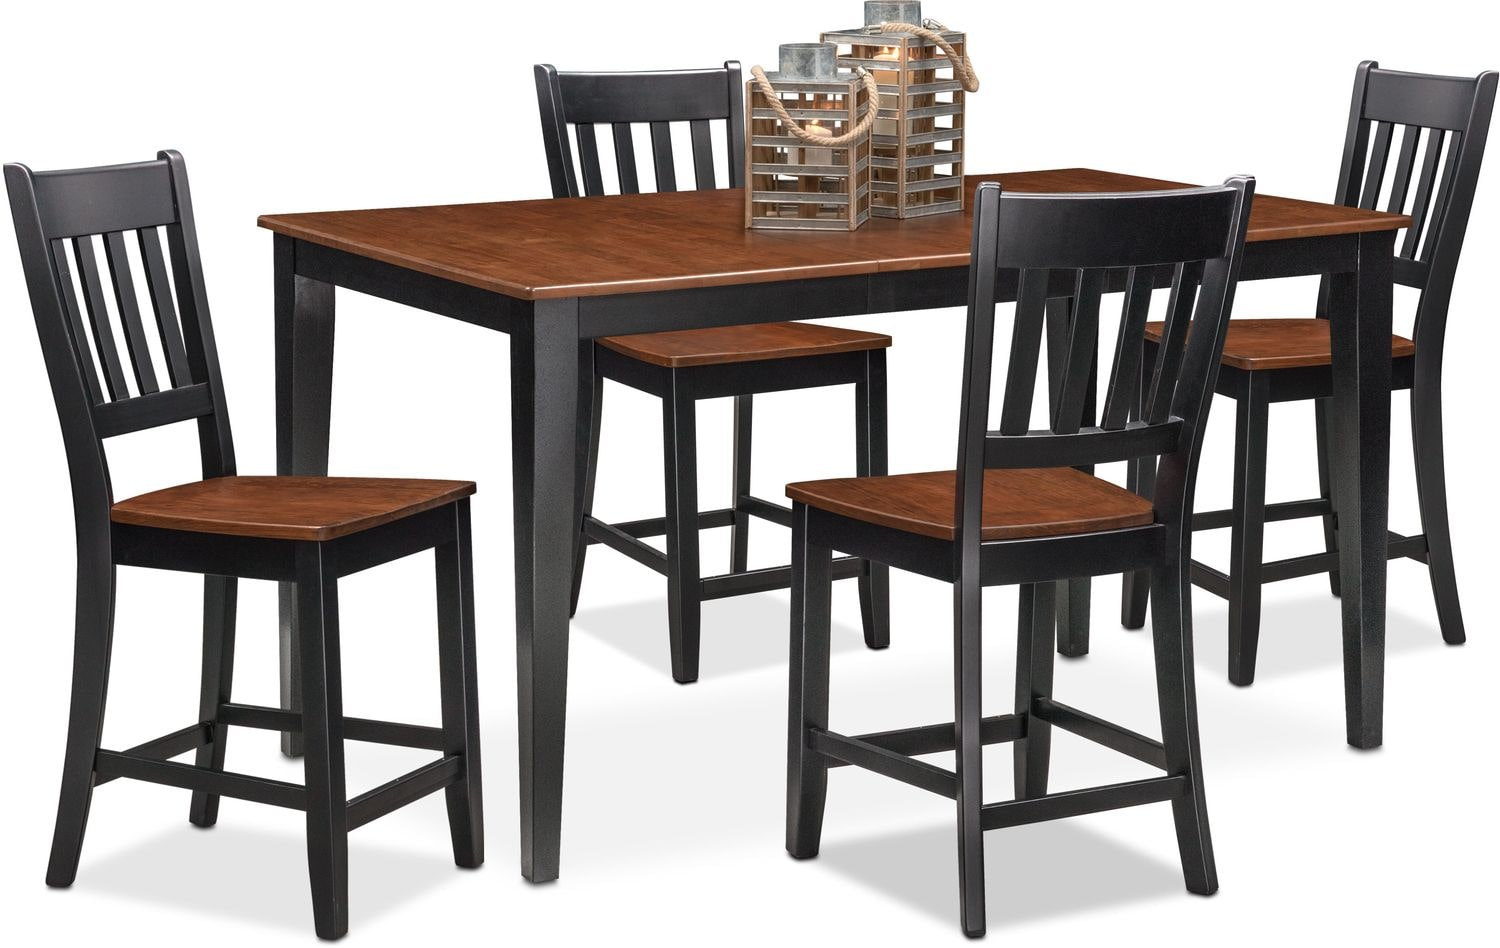 Value City Patio Furniture